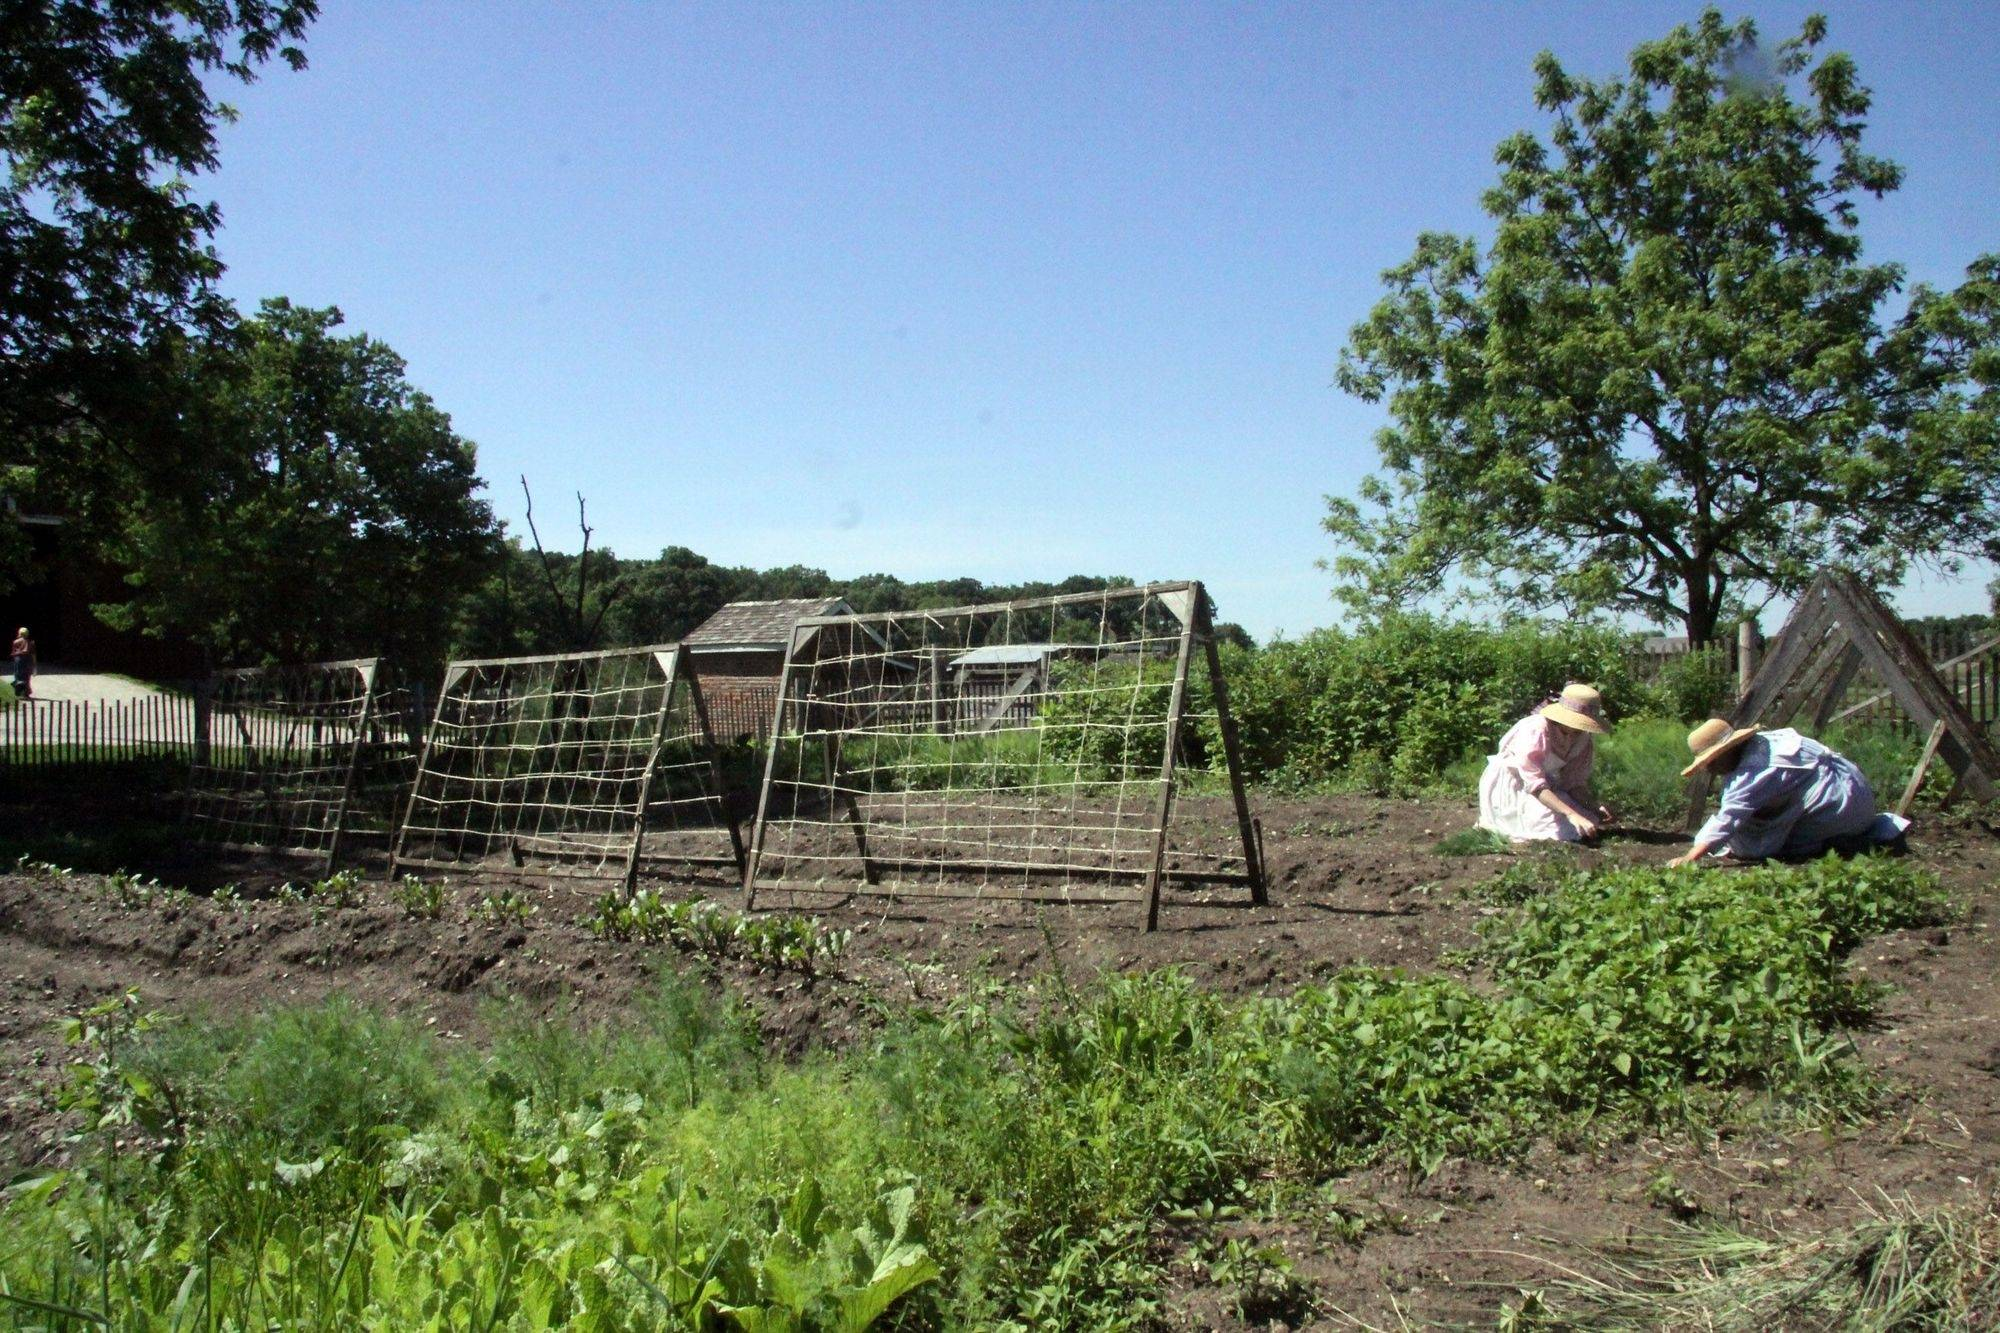 Kline Creek Farm staffers Rebekah Carlton and Sara Ivetic work in the garden at the DuPage County Forest Preserve's living-history farm in West Chicago. Winfield officials want to have the farm's address changed.